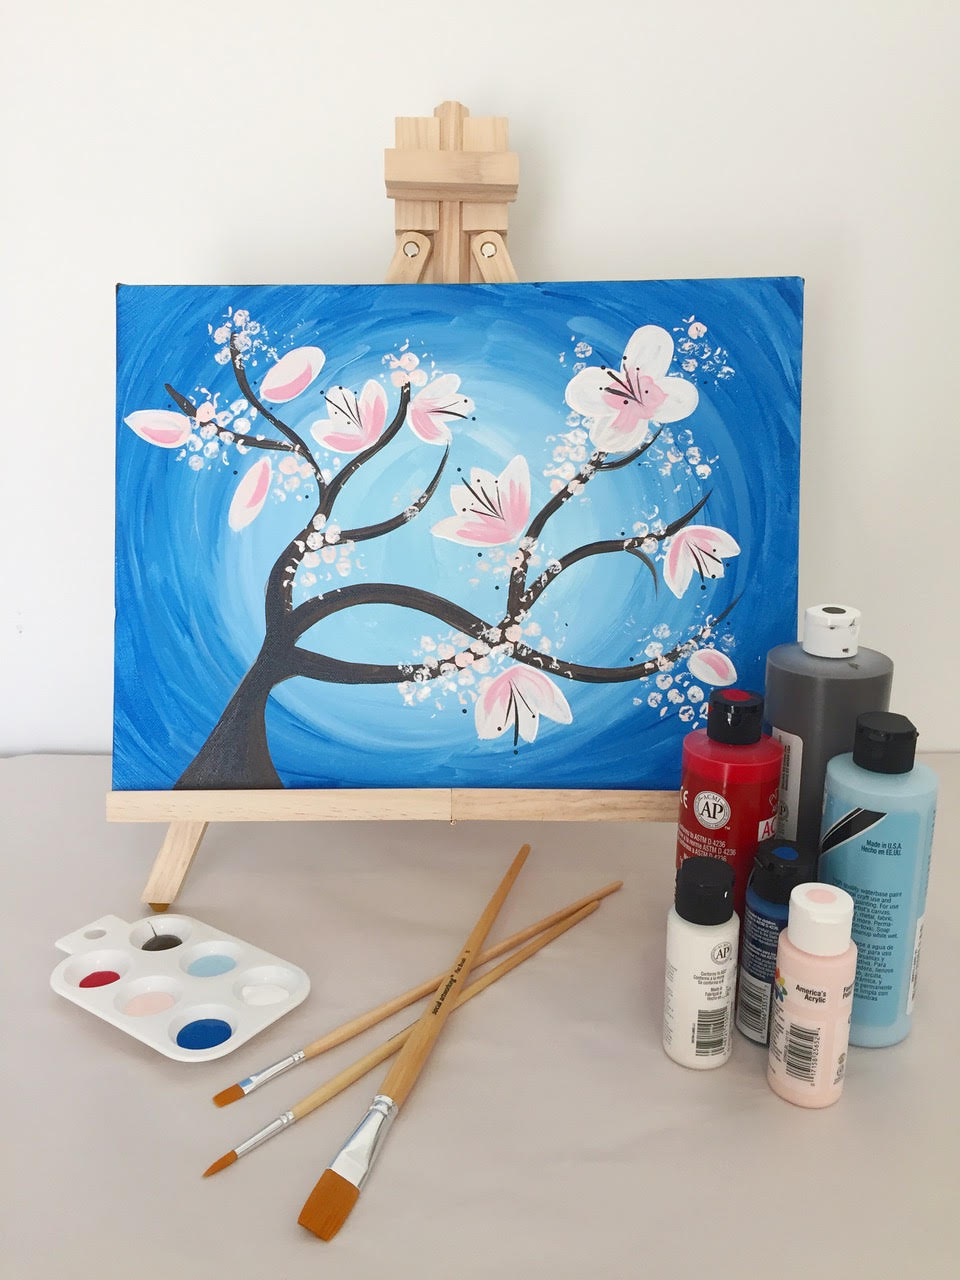 Paint + Wine + a little Design! Brush Strokes Pottery will walk you through painting this gorgeous Cherry Blossom tree while you relax with a glass of wine. All materials are provided and the ticket includes two glasses of wine. Tickets $45